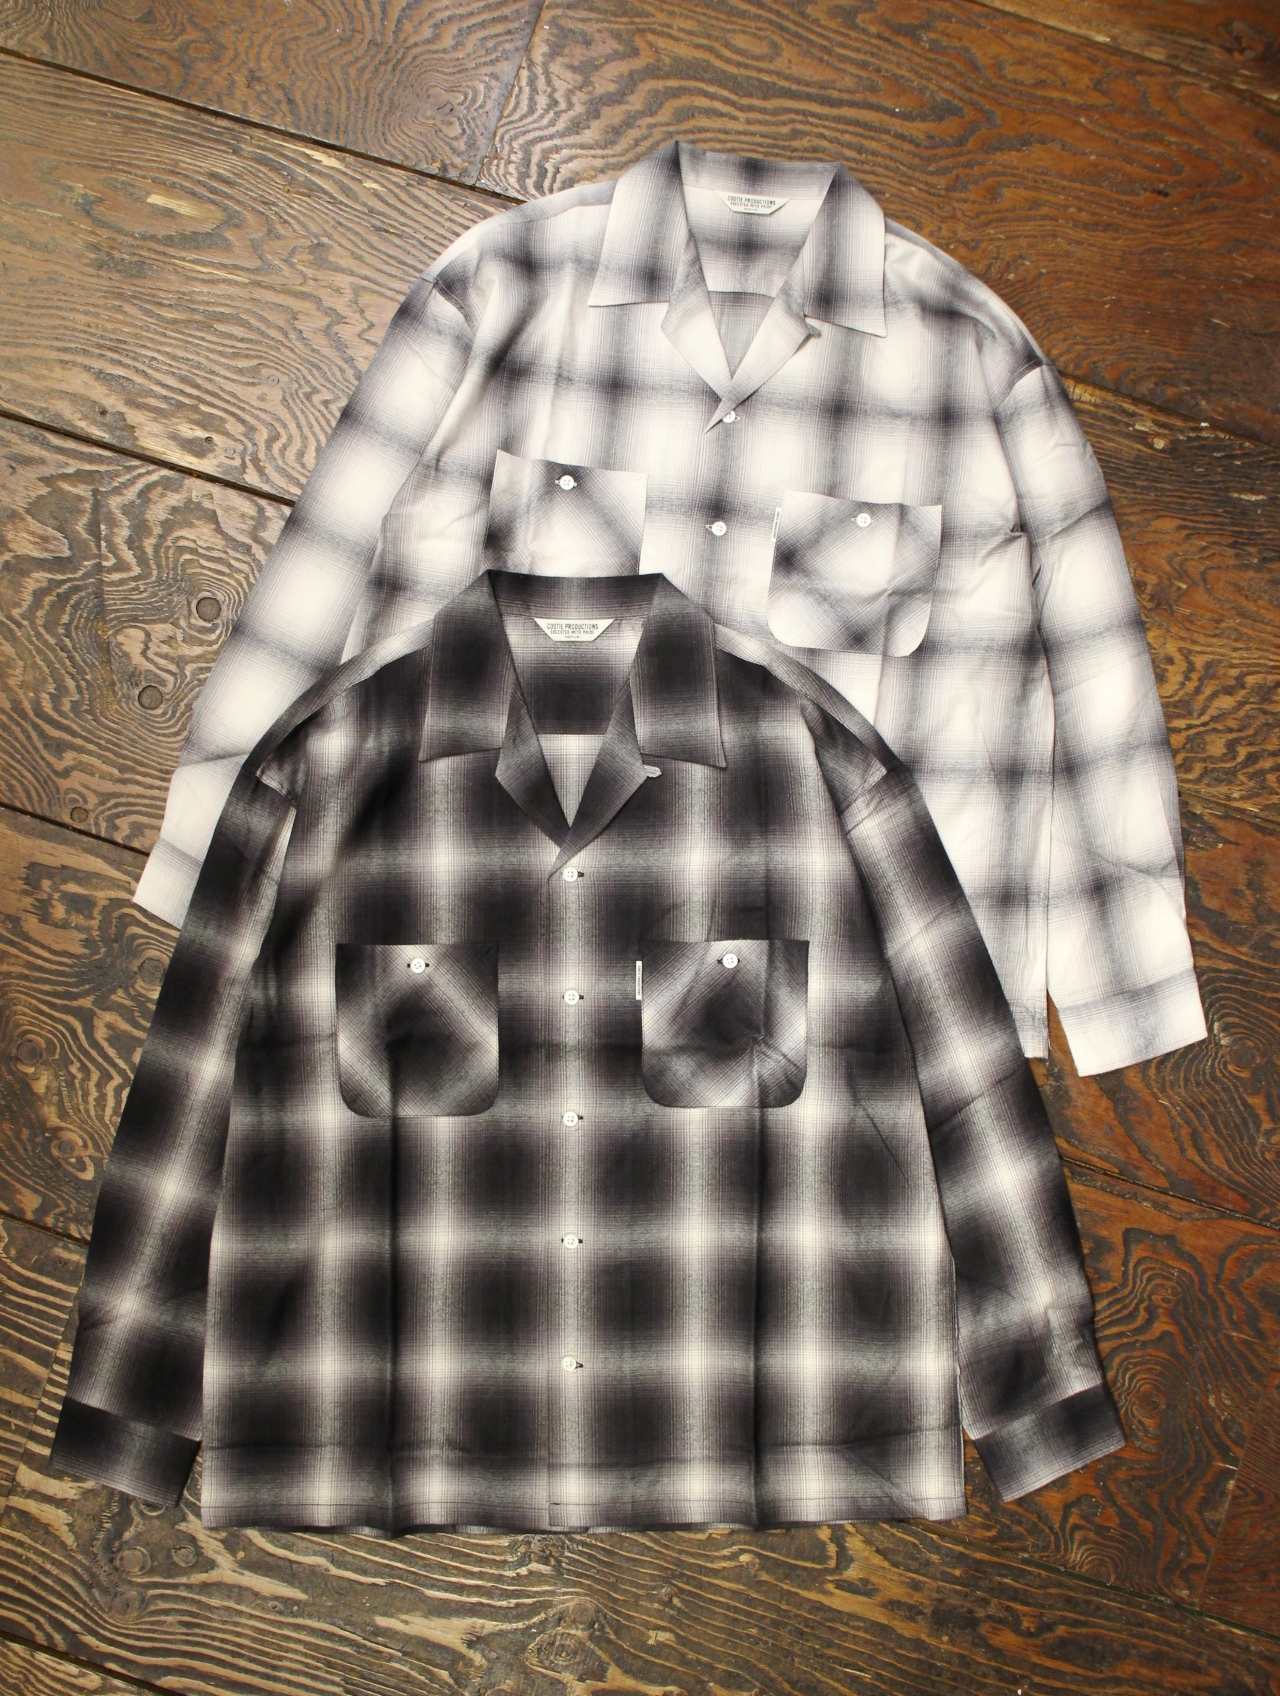 COOTIE  「Ombre Check Open-Neck L/S Shirt 」 オープンカラーチェックシャツ